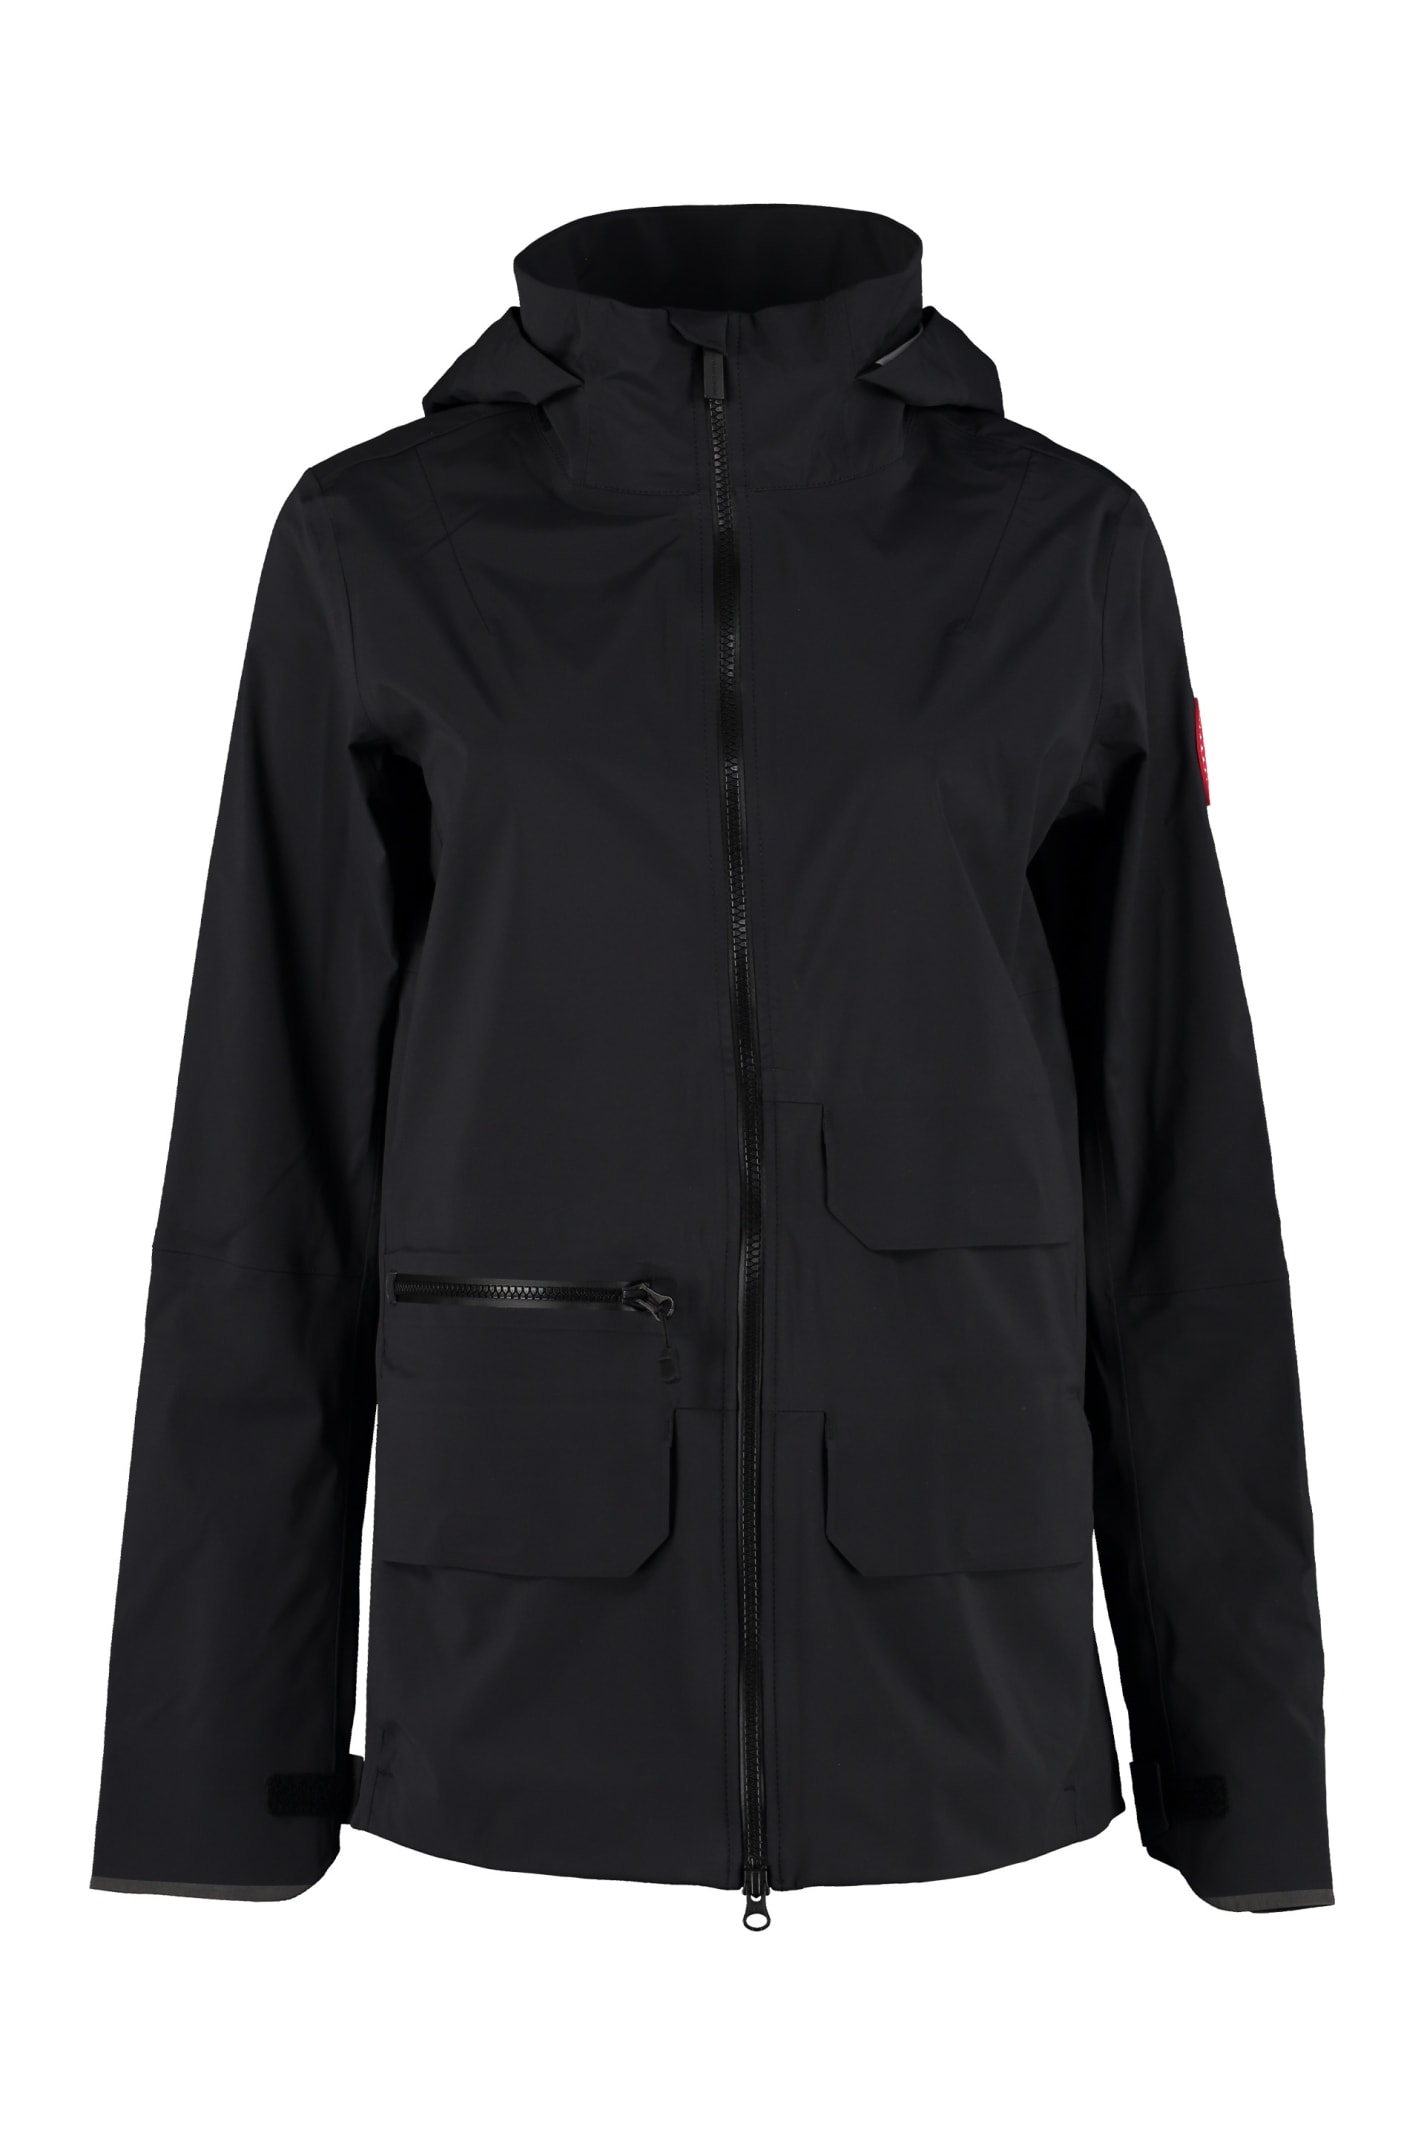 Canada Goose Pacifica Hooded Techno Jacket